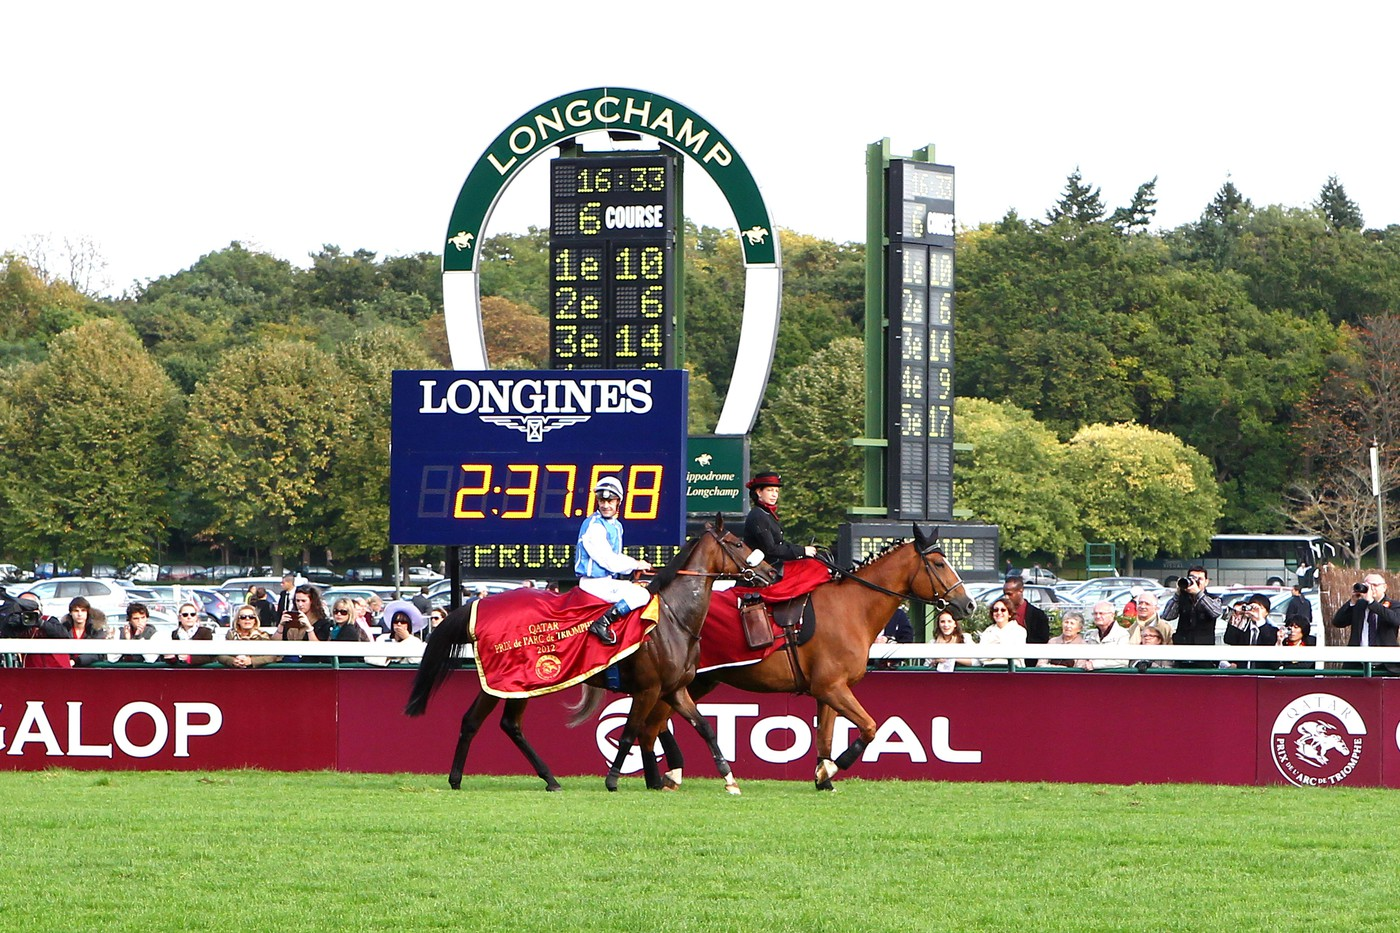 Longines Flat Racing Event: Qatar Prix de l'Arc de Triomphe: Longines at the service of the race of the year 1